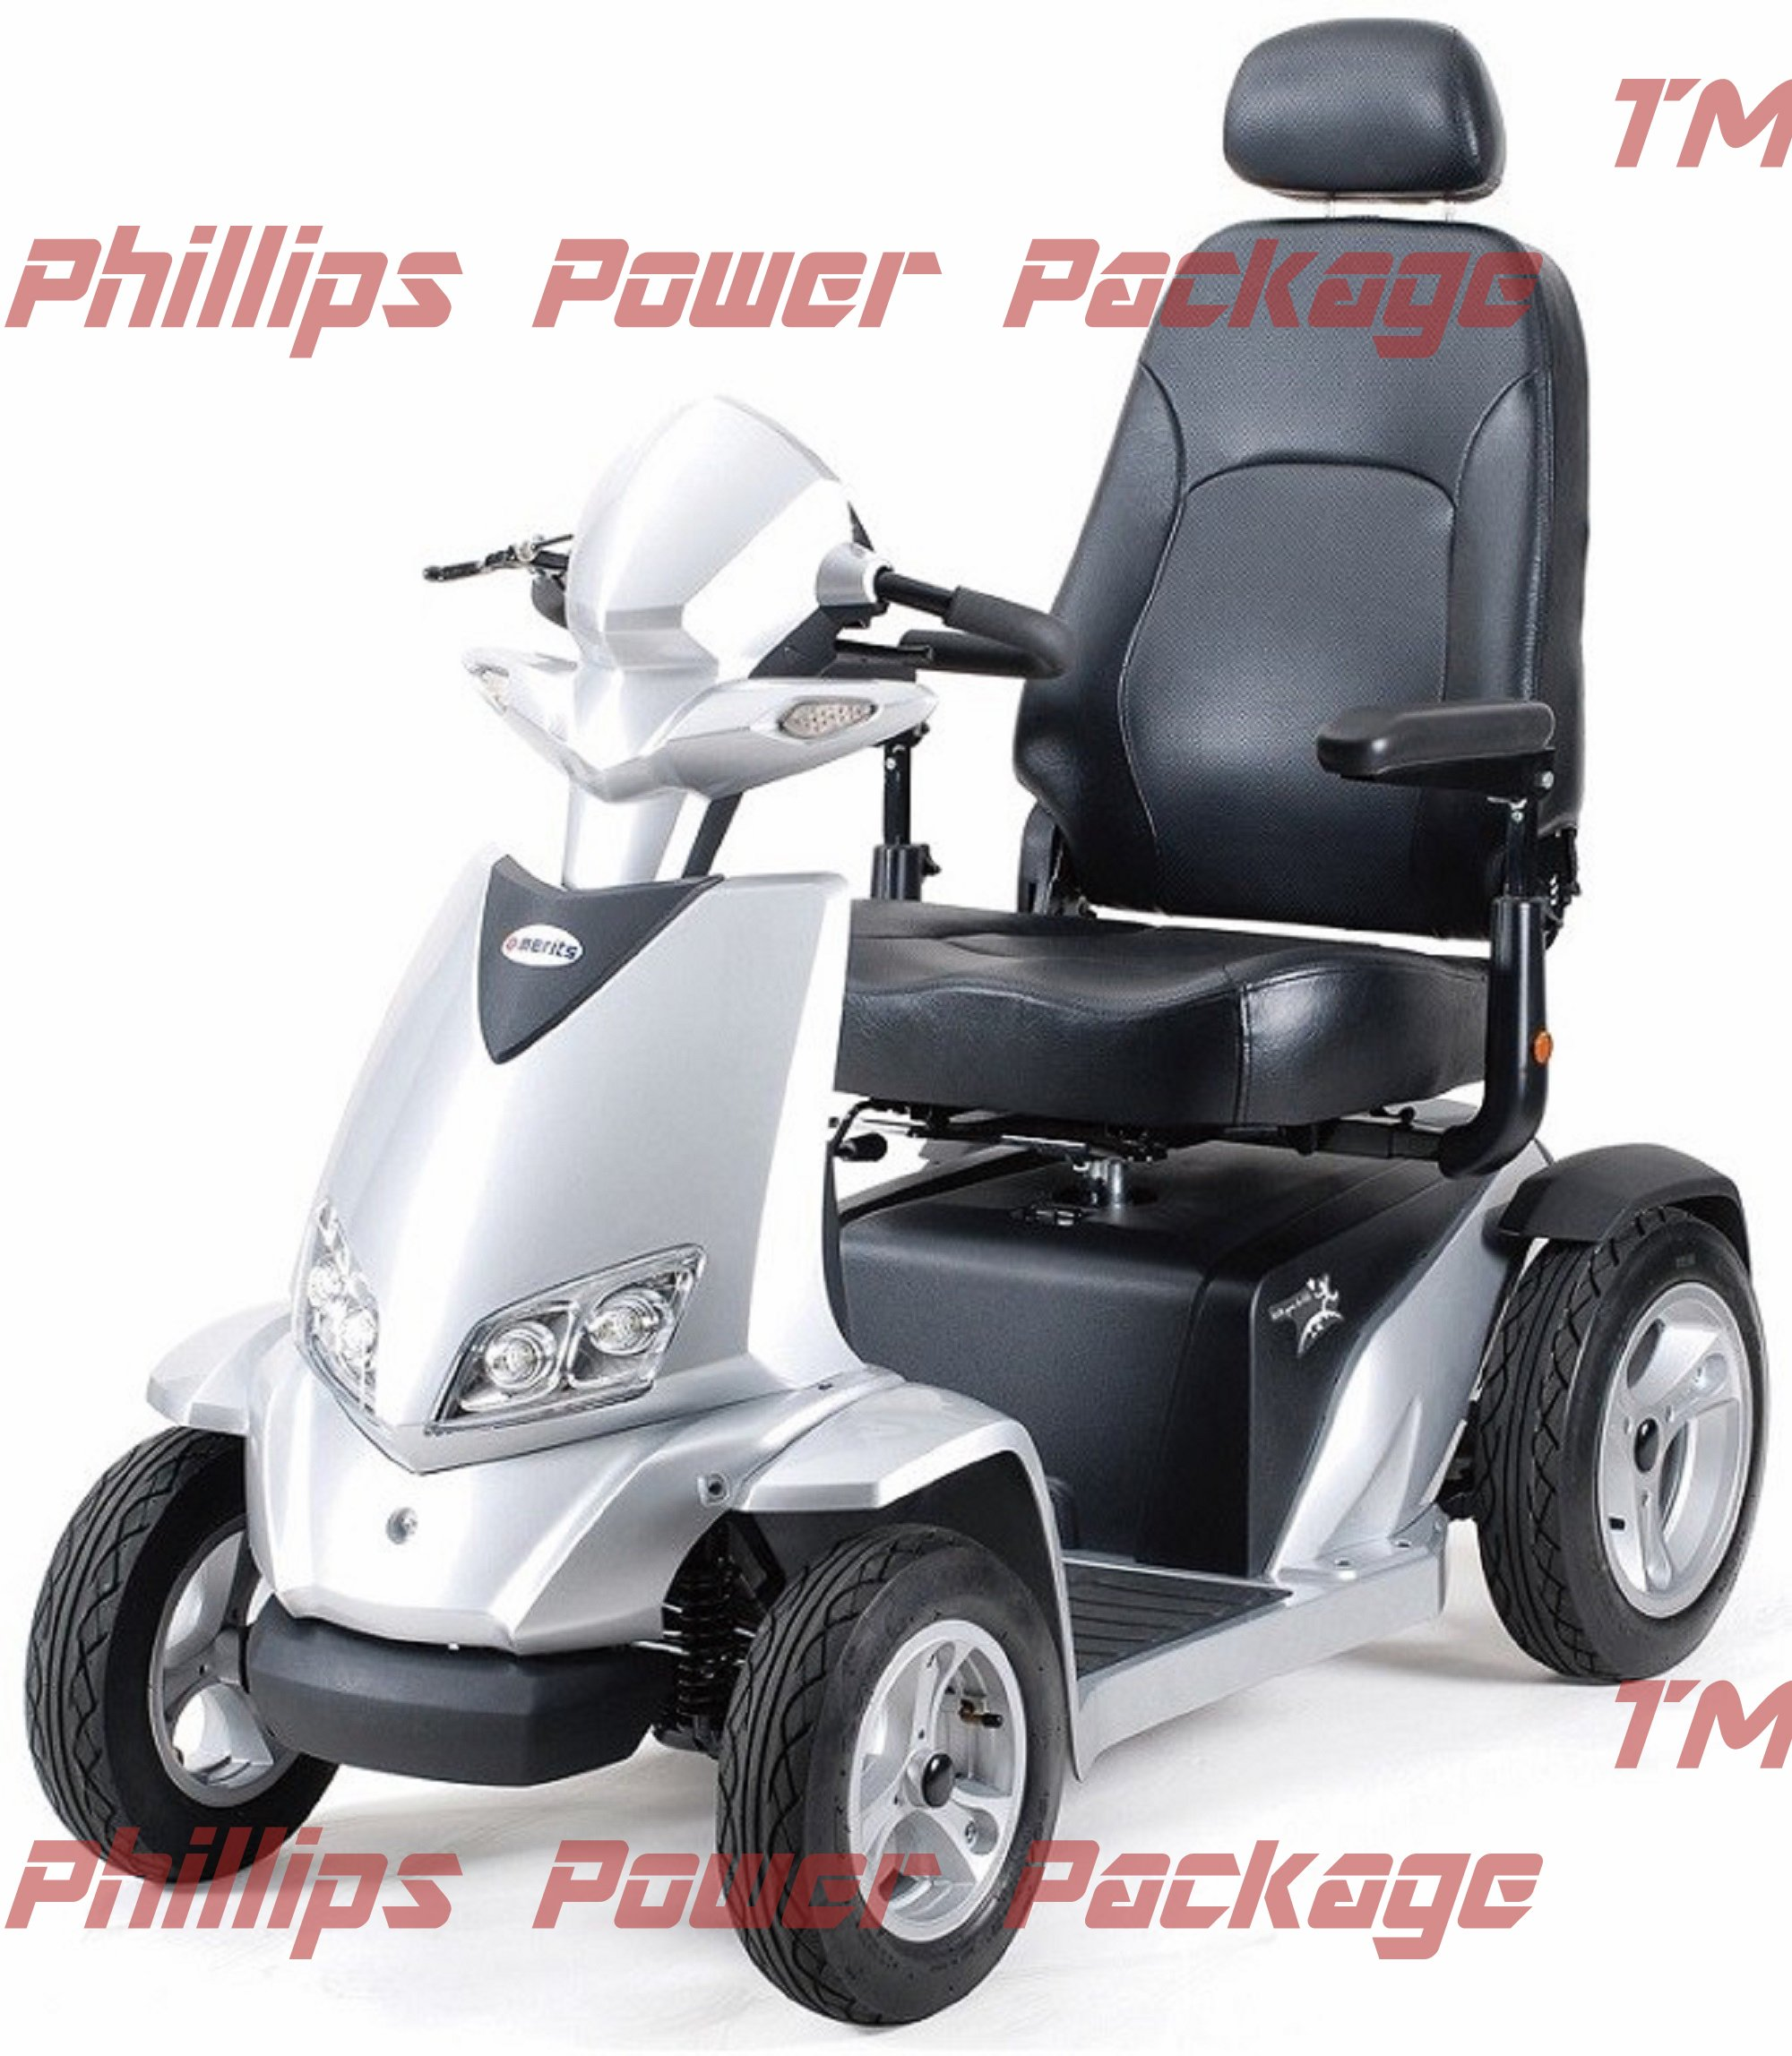 Merits - Silverado Extreme - 4-Wheel Full Suspension Electric Scooter - 20''W x 18''D, Silver - PHILLIPS POWER PACKAGE TM - TO $500 VALUE